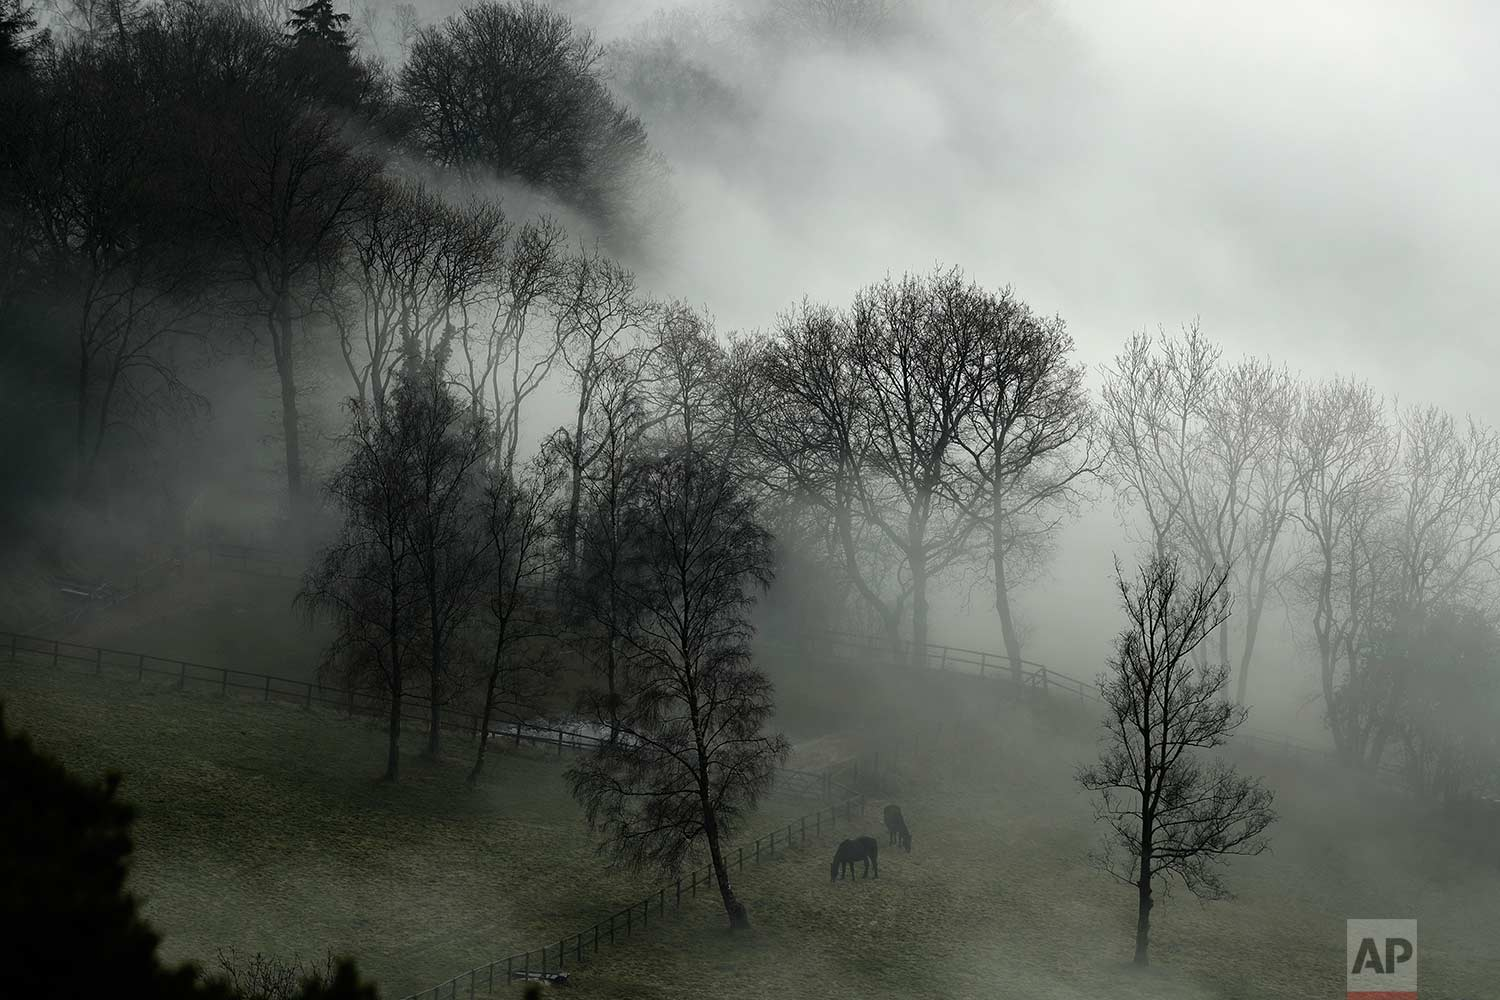 In this Monday, Jan. 23, 2017 photo, horses graze in a paddock with fog enveloping the trees behind them, as seen from Leith Hill in Surrey, south west of London. Thick fog has caused numerous flight delays and cancellations at London Heathrow and other area airports. The Met Office issued a severe weather warning for London and most of southern England as driving conditions were also hazardous and slippery. (AP Photo/Matt Dunham)